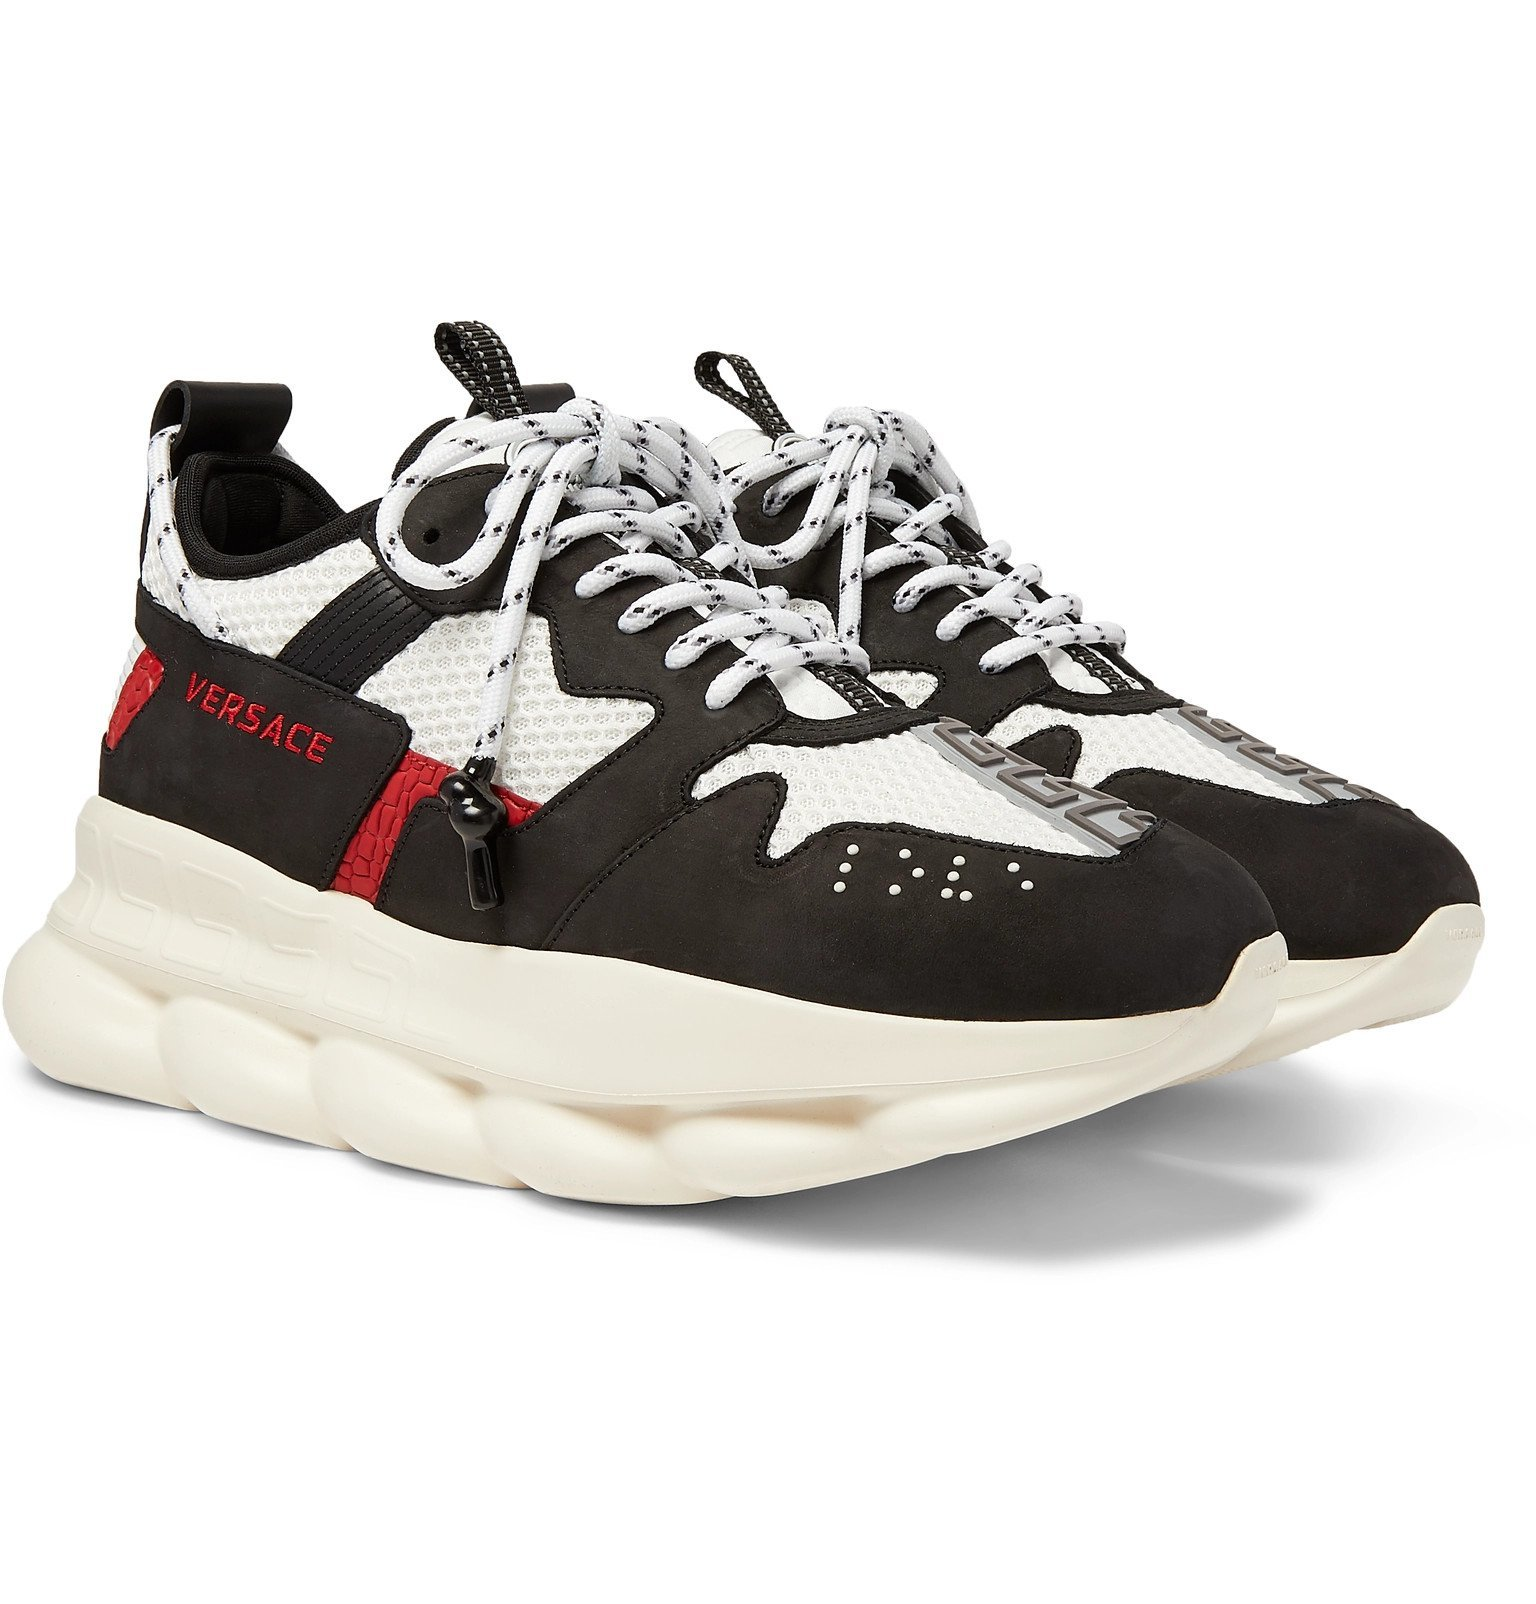 Versace - Chain Reaction 2.0 Panelled Suede and Mesh Sneakers - Black